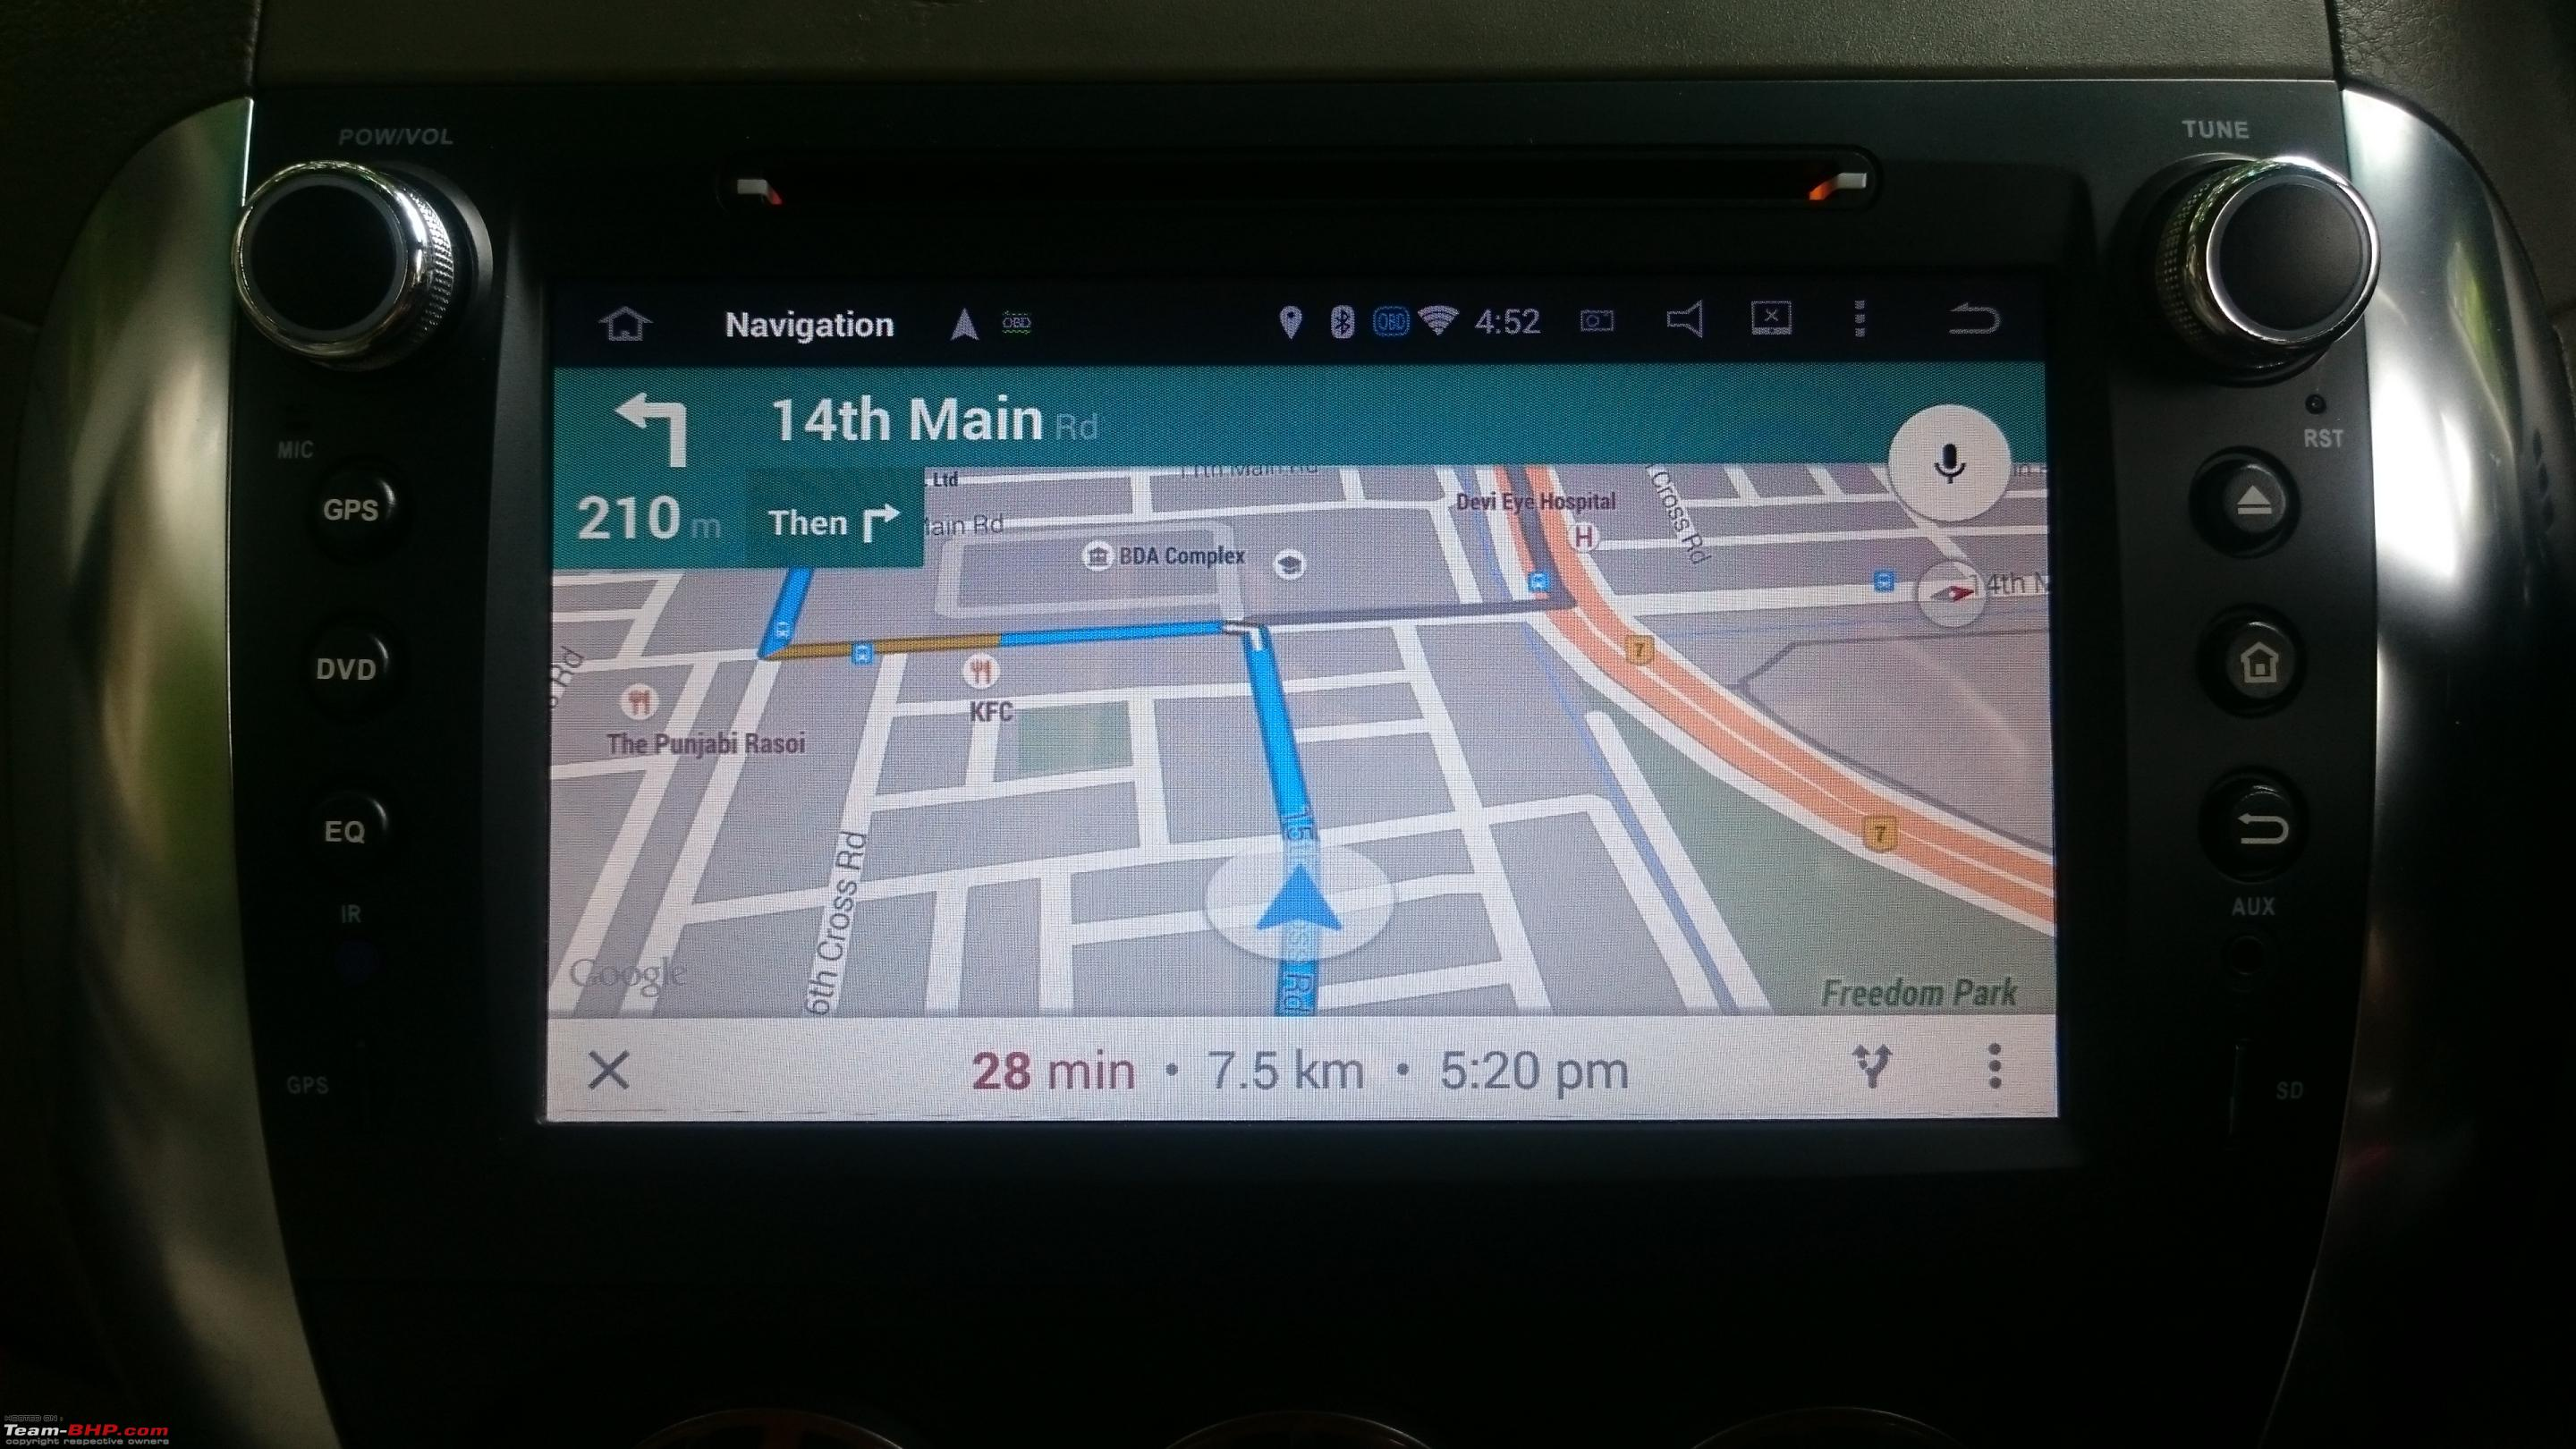 Review: Android Head-Unit in my Maruti SX4 - Team-BHP